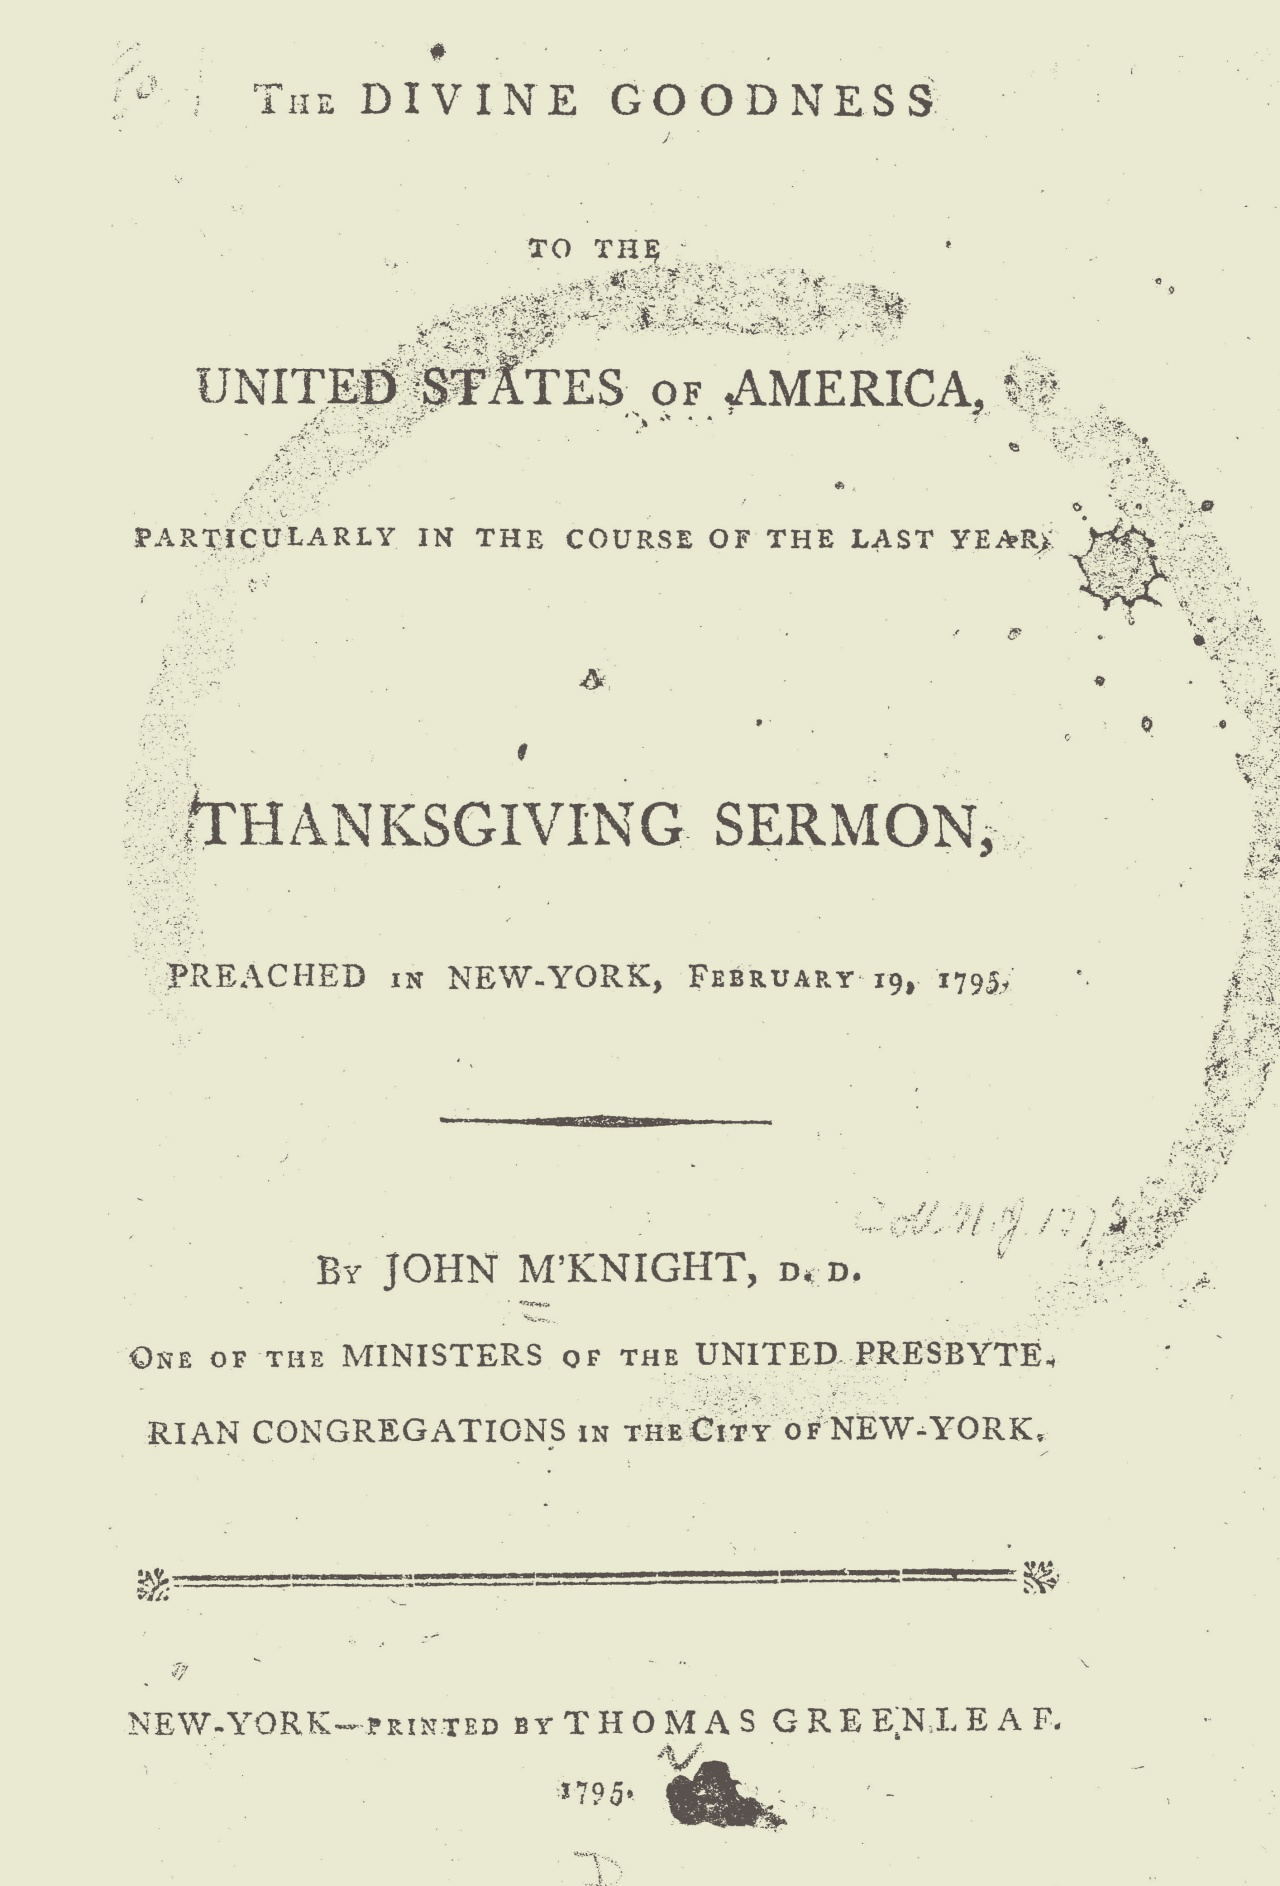 McKnight, John, The Divine Goodness to the United States Title Page.jpg